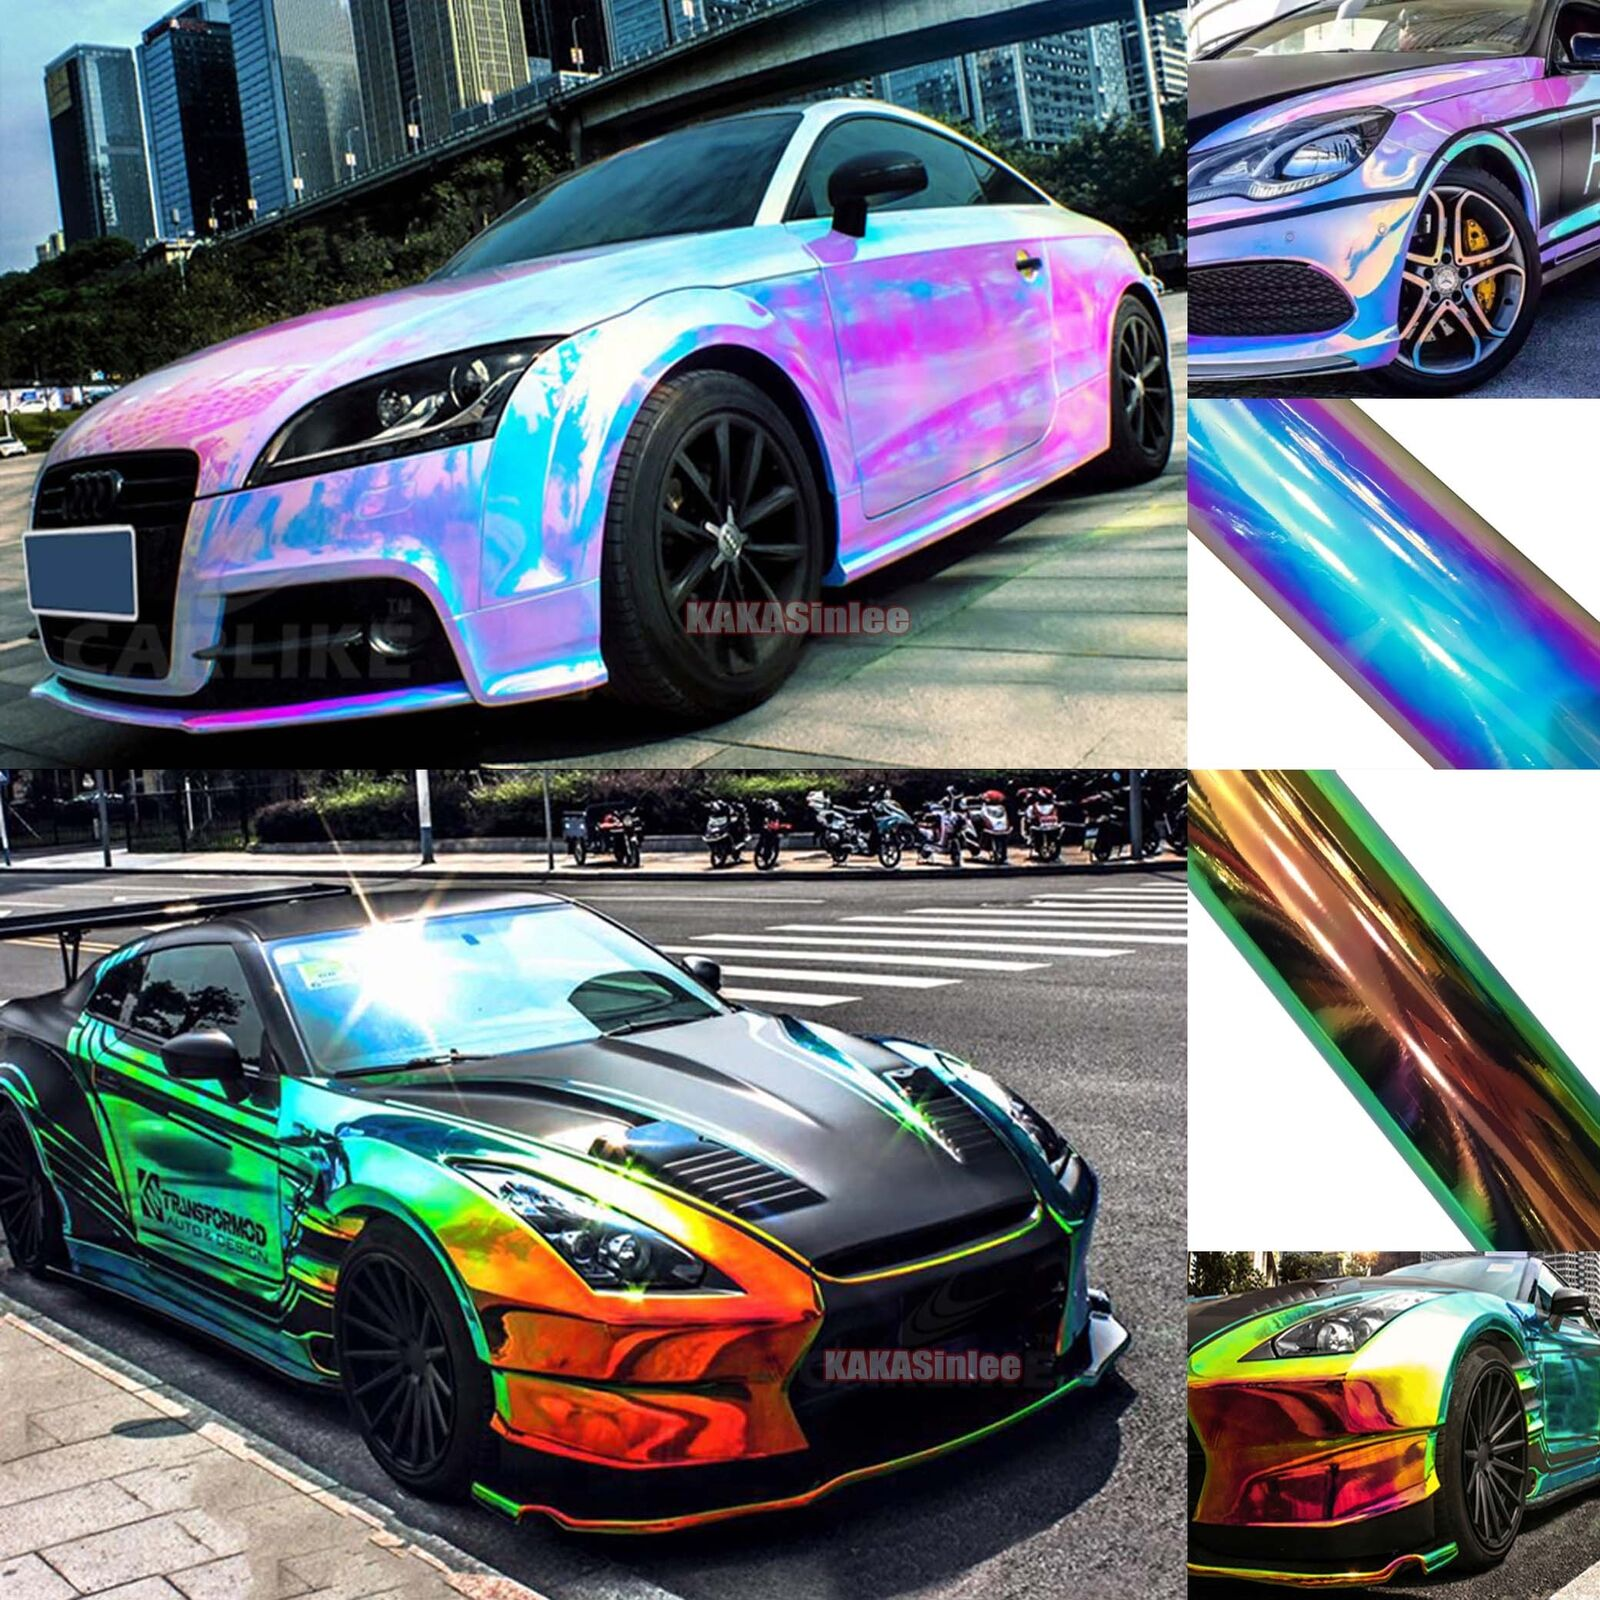 Chameleon 7 Tone Paint: New Glossy Rainbow Magic Mirror Chameleon Chrome Car Vinyl